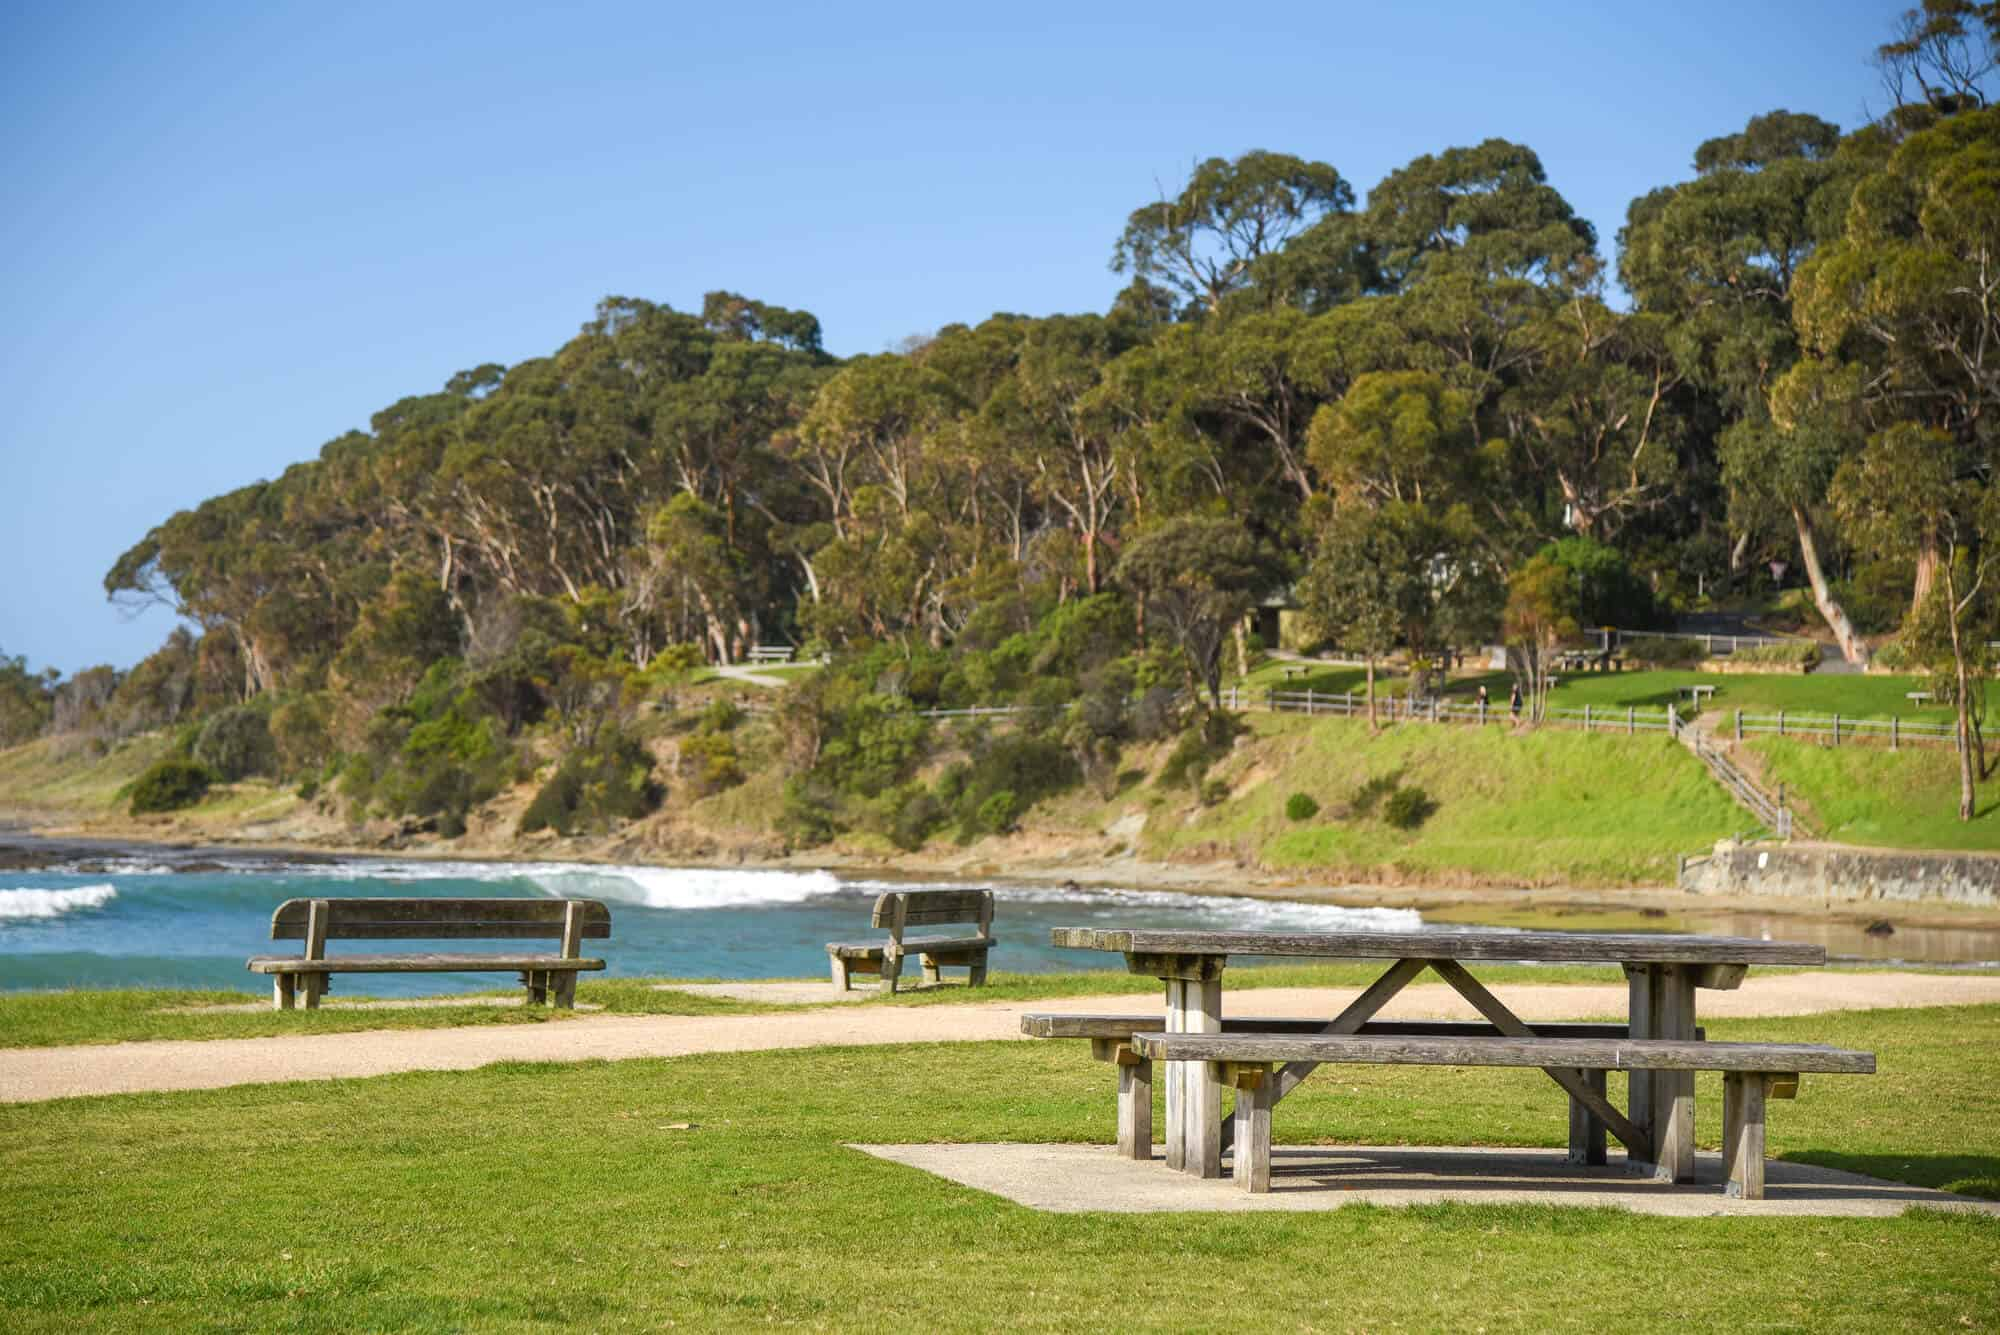 Picnic Area by the Ocean by wooden table and chair sets and wooden benches with the ocean and trees on the background